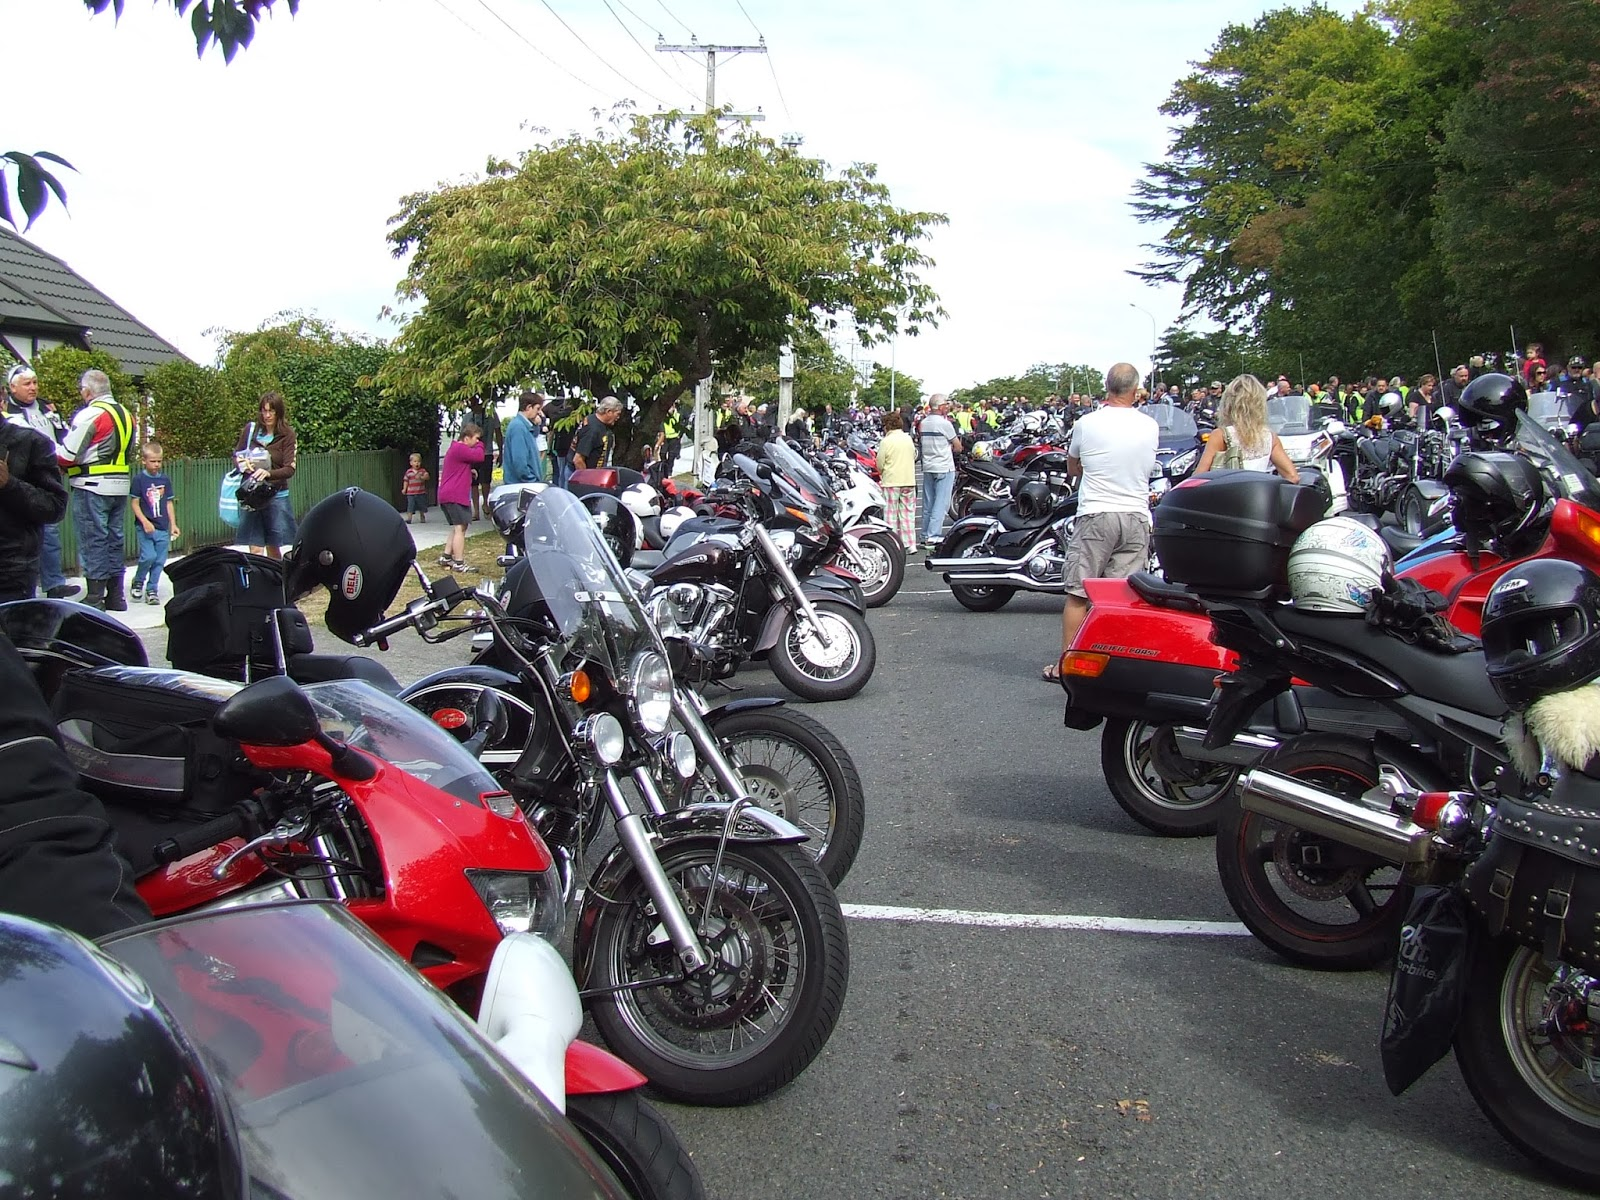 Toy Run Ulysses Waikato Chapter Cambridge - Hamilton NZ DSCF2887